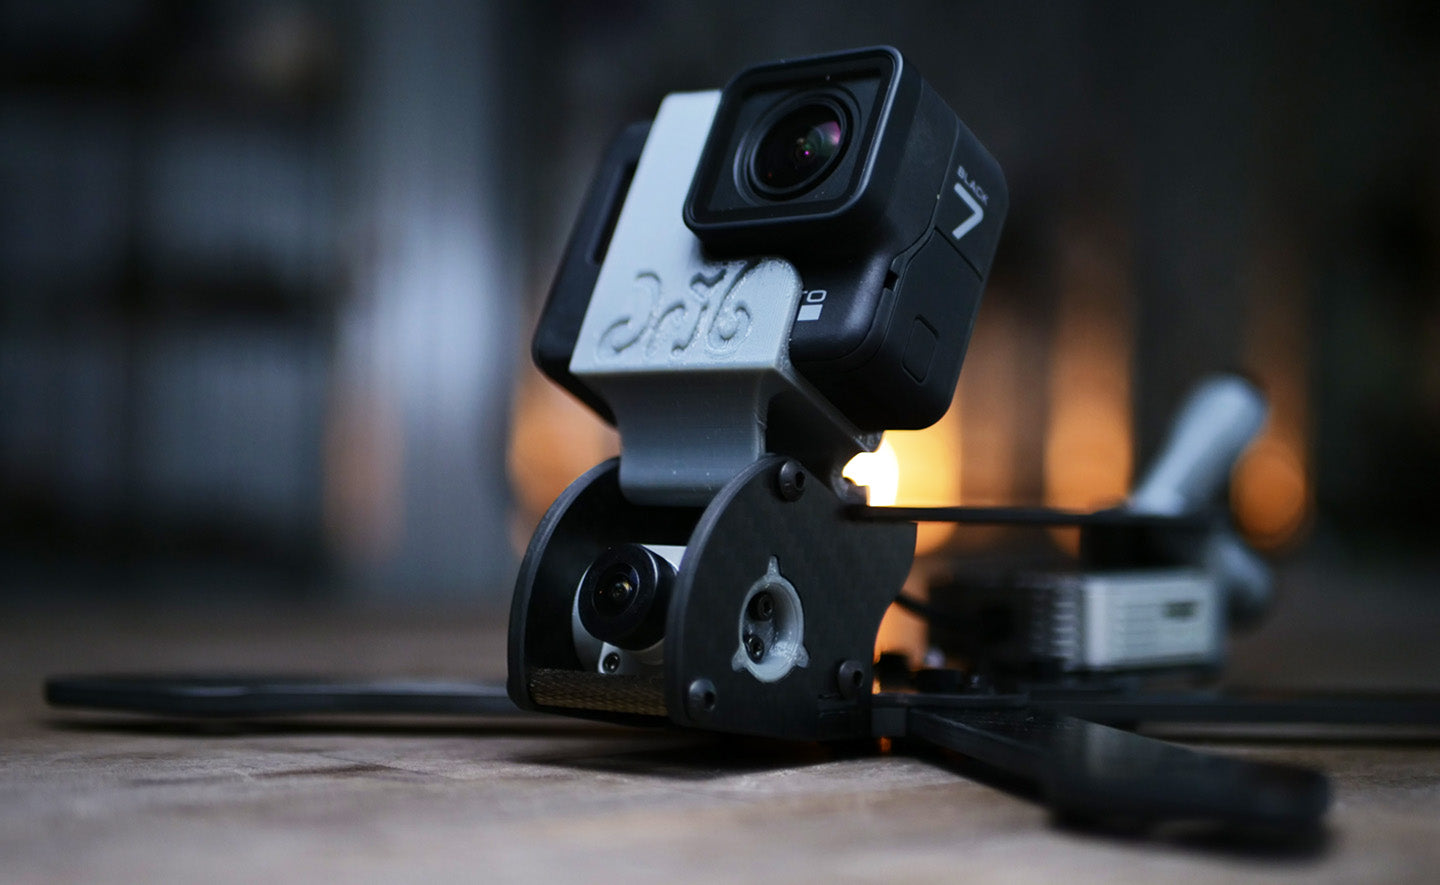 A Skyeliner HD Frame Showing the DJI camera and the GoPro Mount.